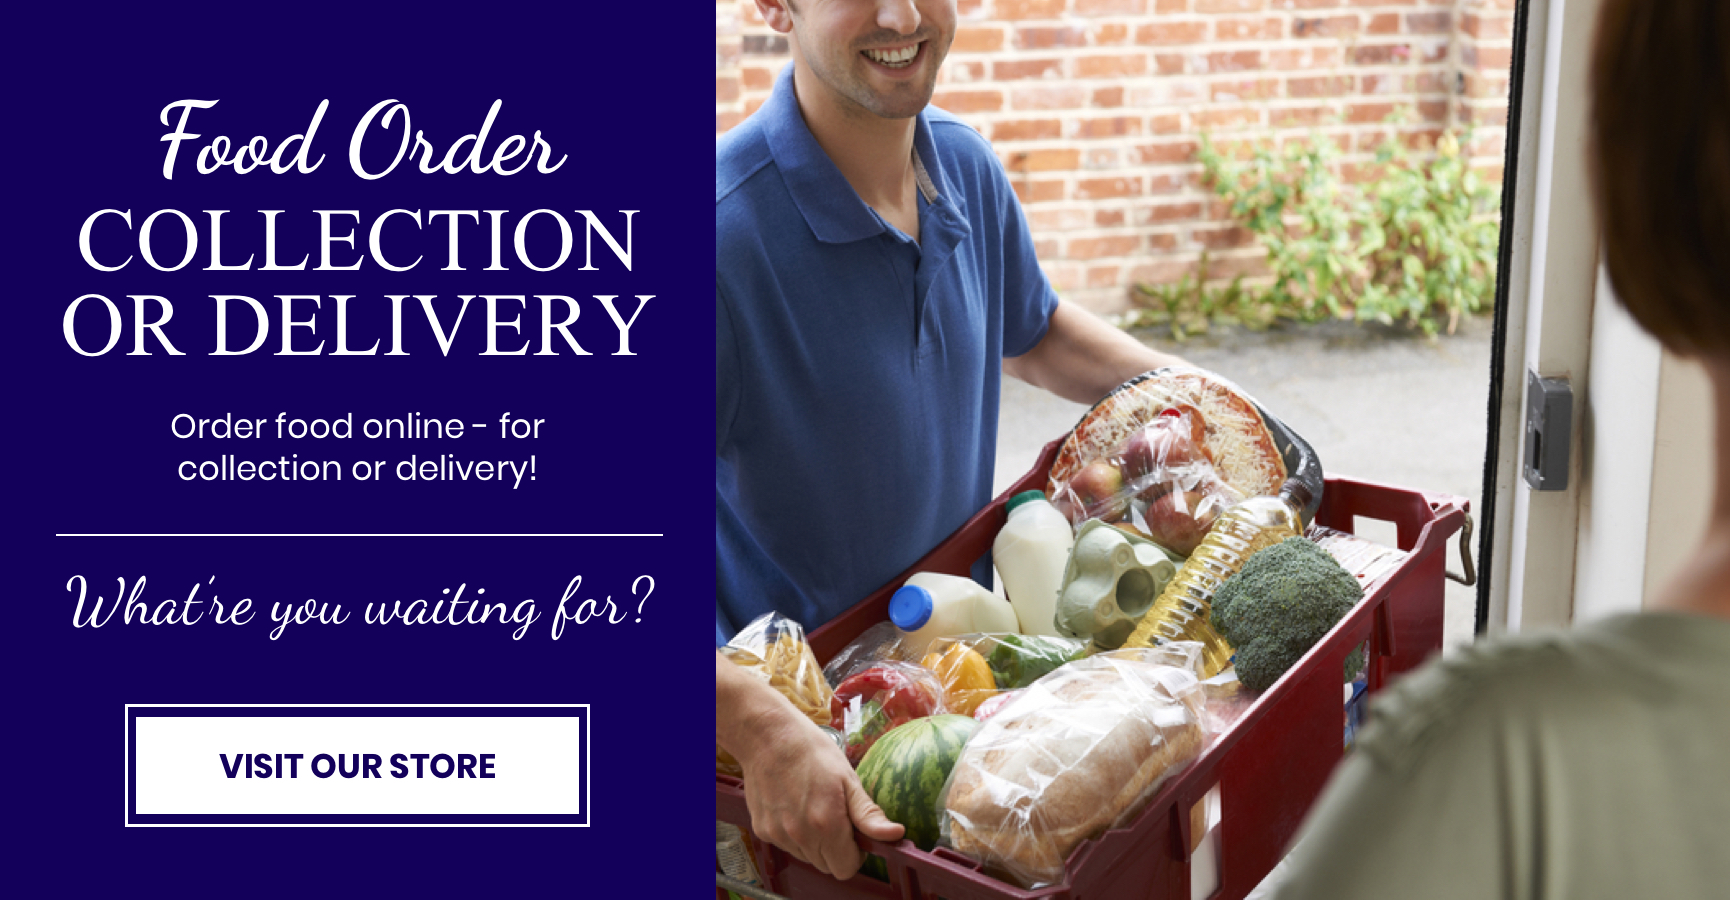 Food Order, Collection or Delivery